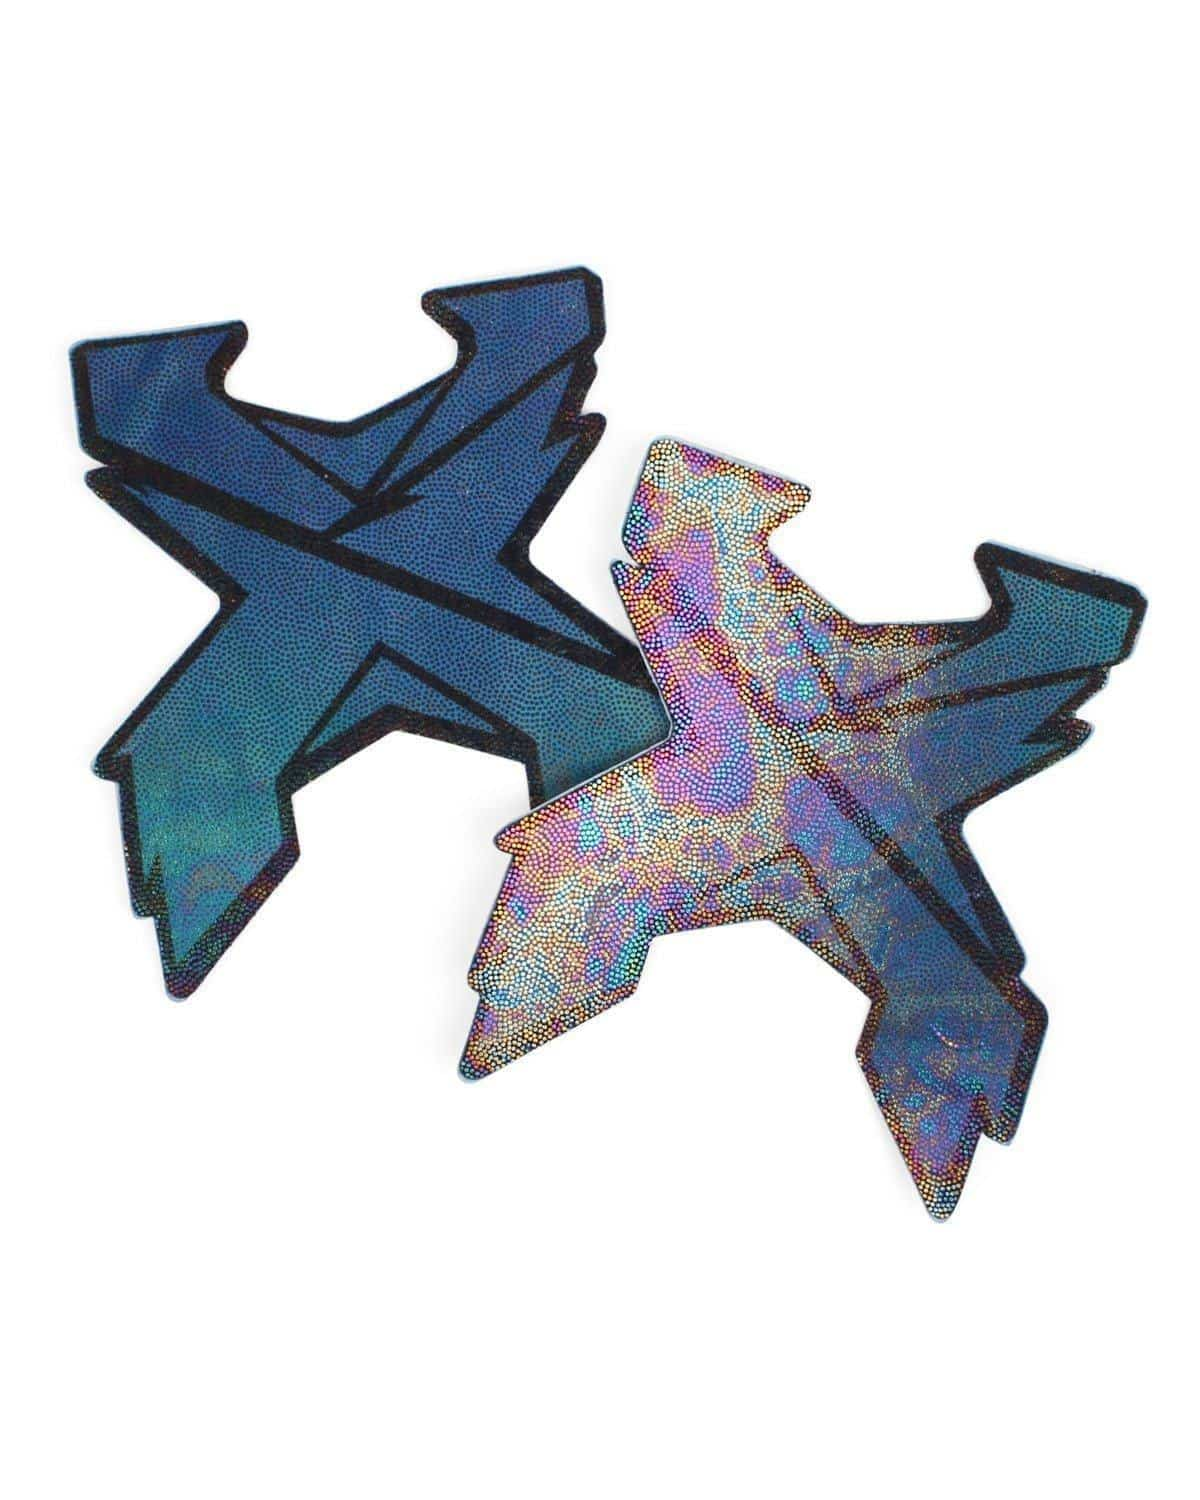 Excision 'Sliced' Logo Pasties by Pastease